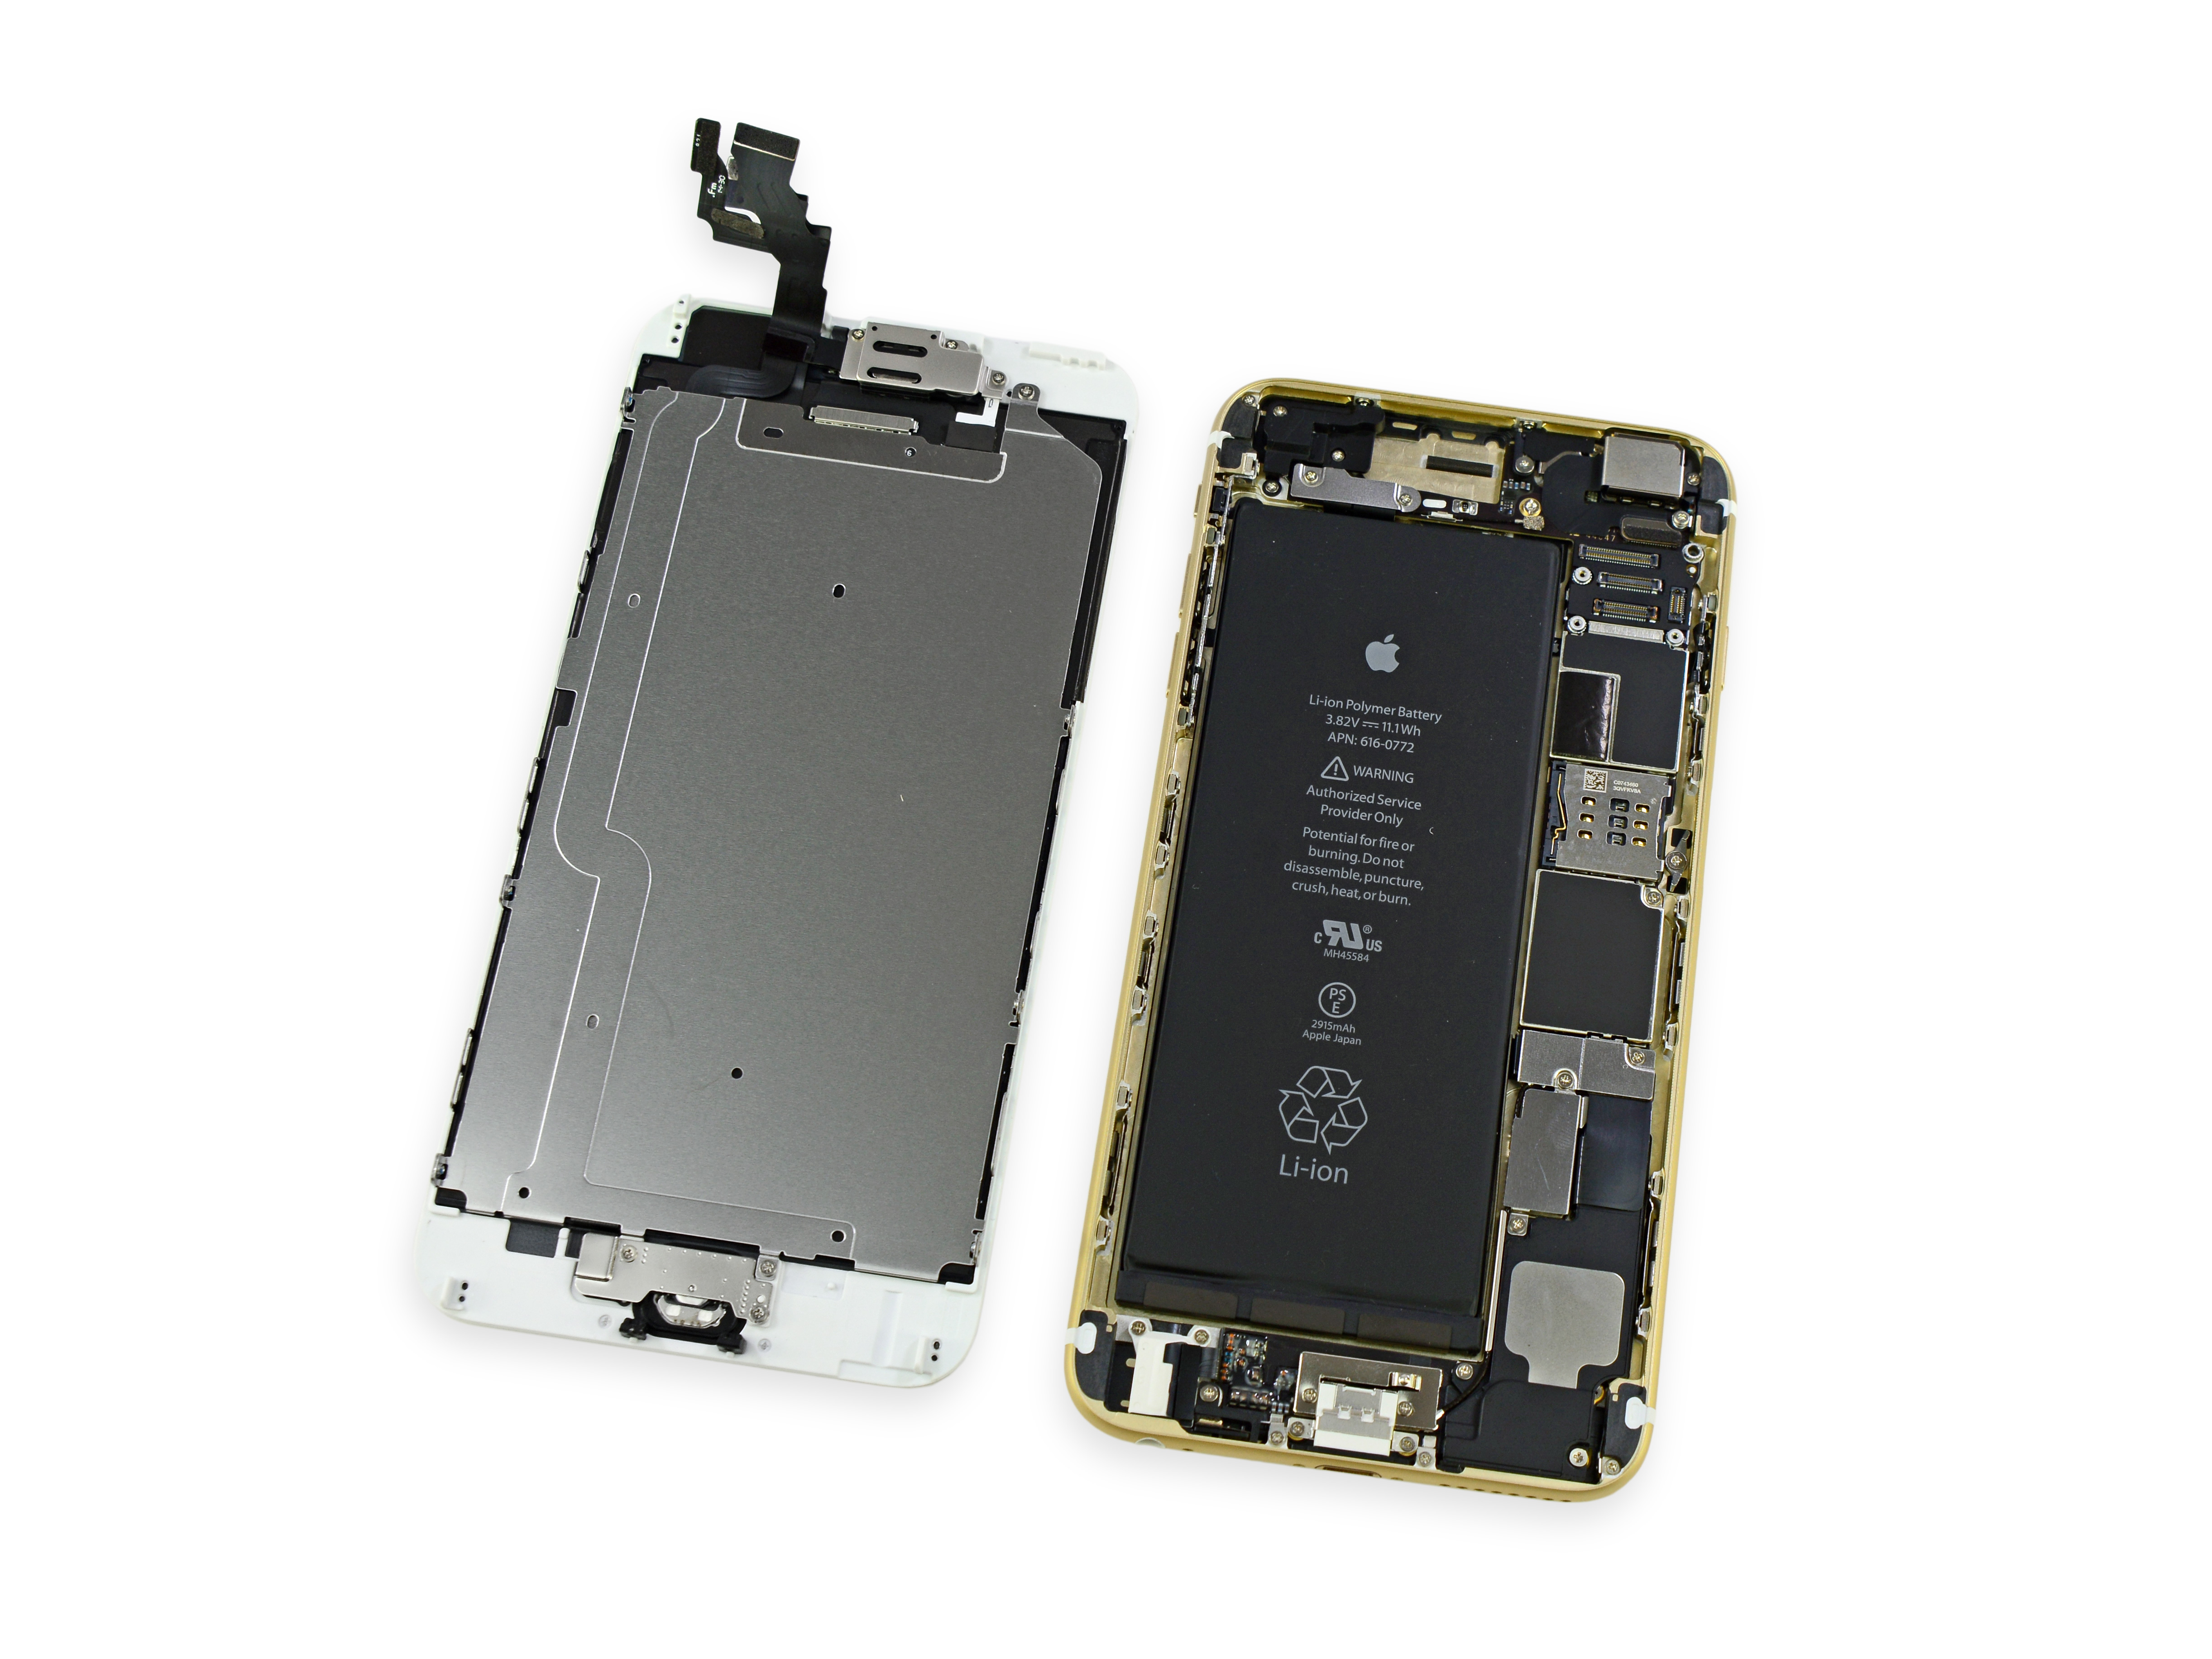 Water Damage Iphone 5 Internal Diagram Electrical Wiring Parts What S Inside The 6 Plus 5c